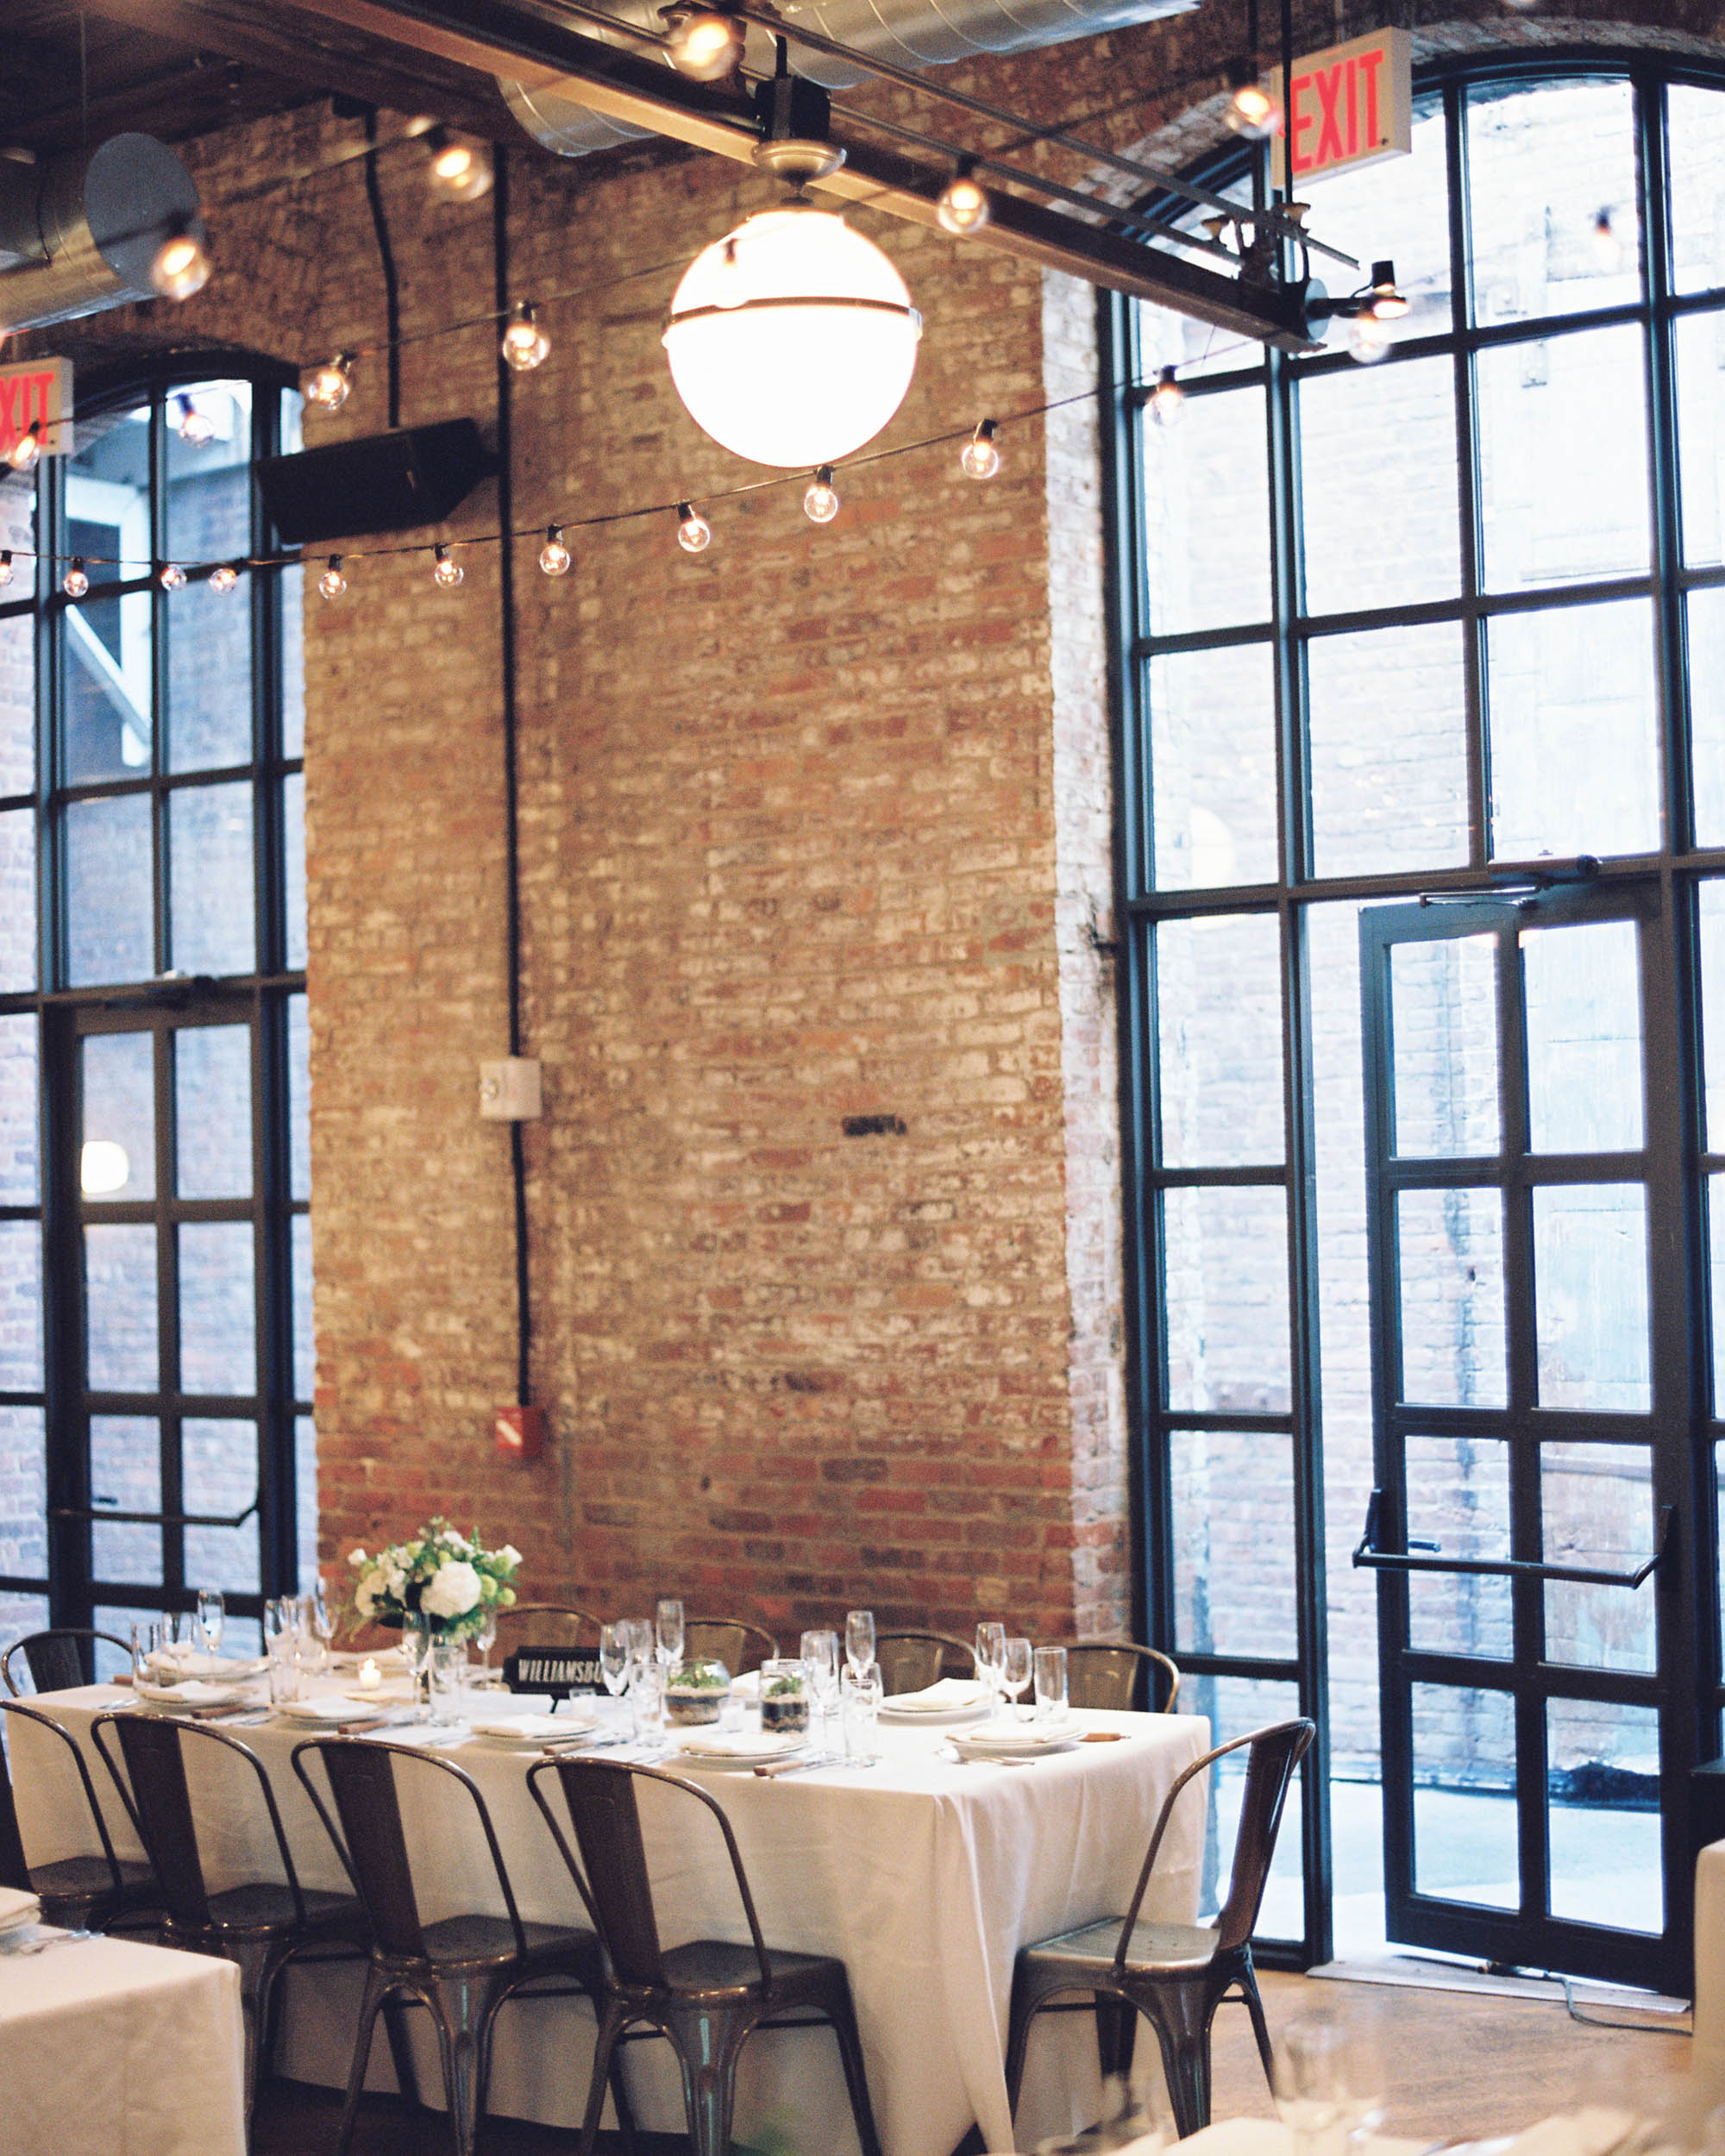 Wythe Hotel Wedding Photographer 158 - Wythe Hotel